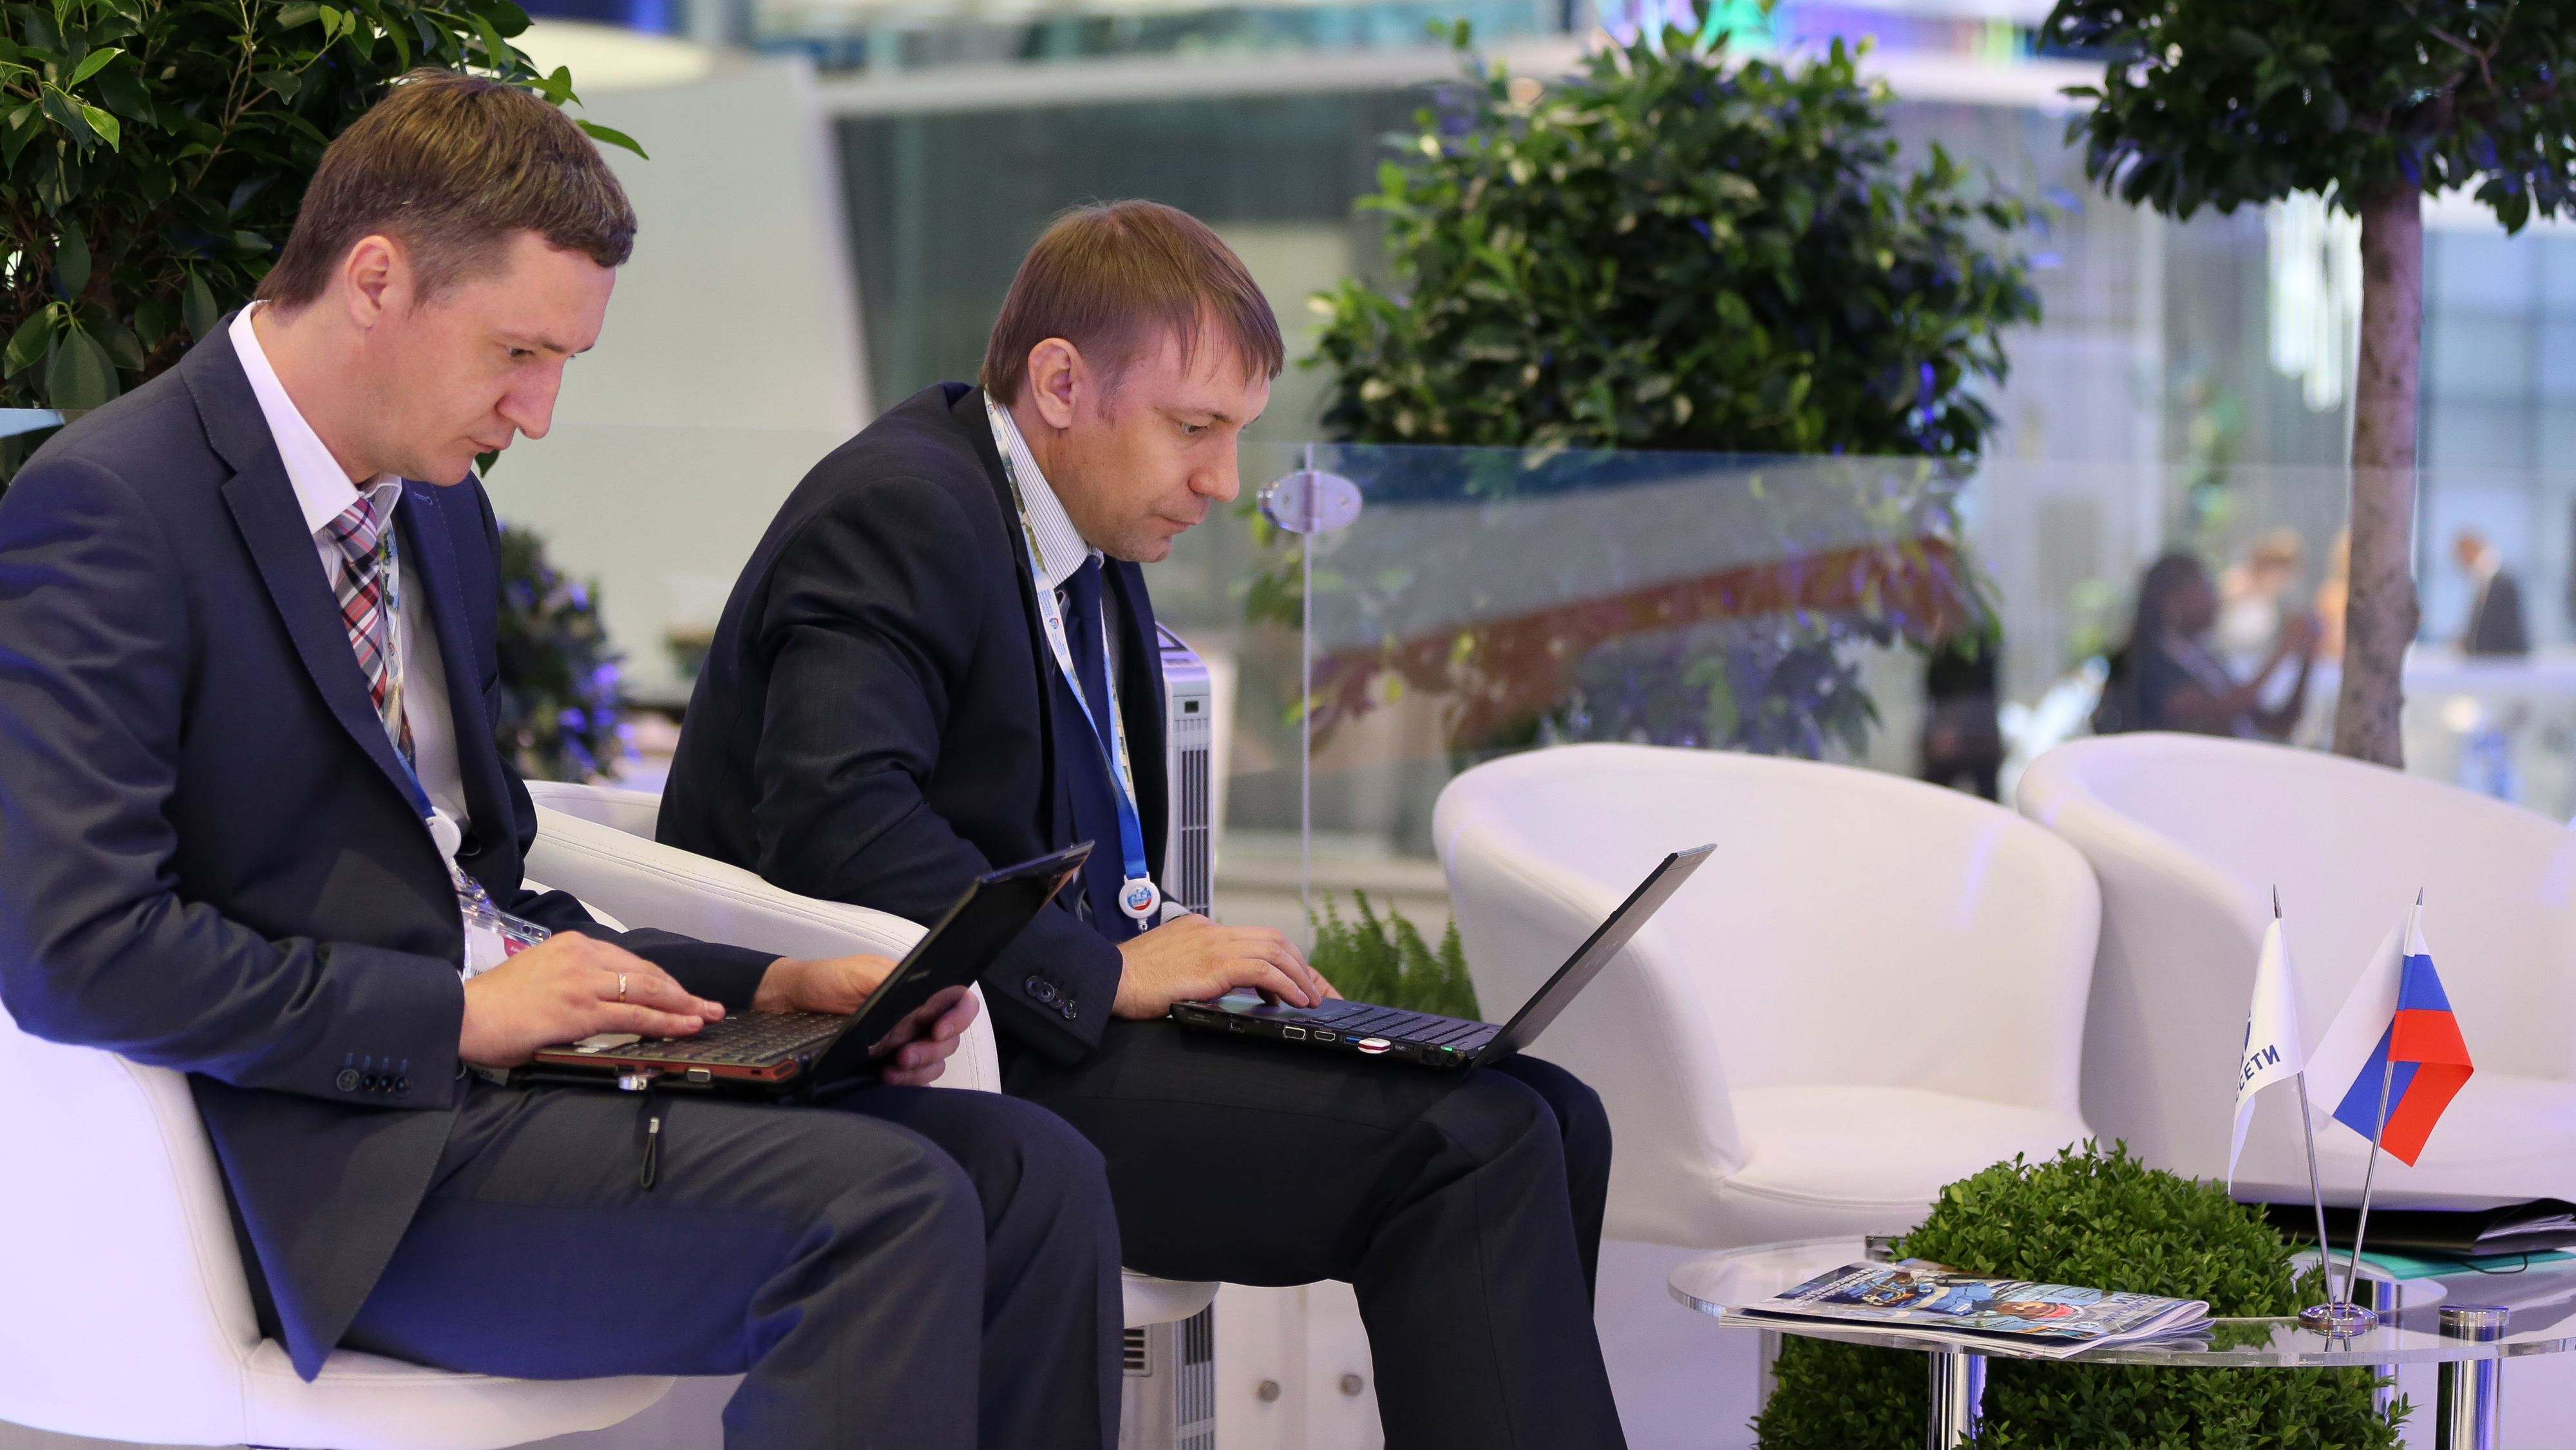 Attendees work on laptop computers near a Russian national flag in a conference hall on day two of the St. Petersburg International Economic Forum 2013 (SPIEF) in St. Petersburg, Russia, on Friday, June 21, 2013. President Vladimir Putin is battling investor skepticism to woo foreign executives descending on his hometown today as Russia's economy faces a risk of recession and a crackdown on critics scares off intellectuals. Photographer: Andrey Rudakov/Bloomberg